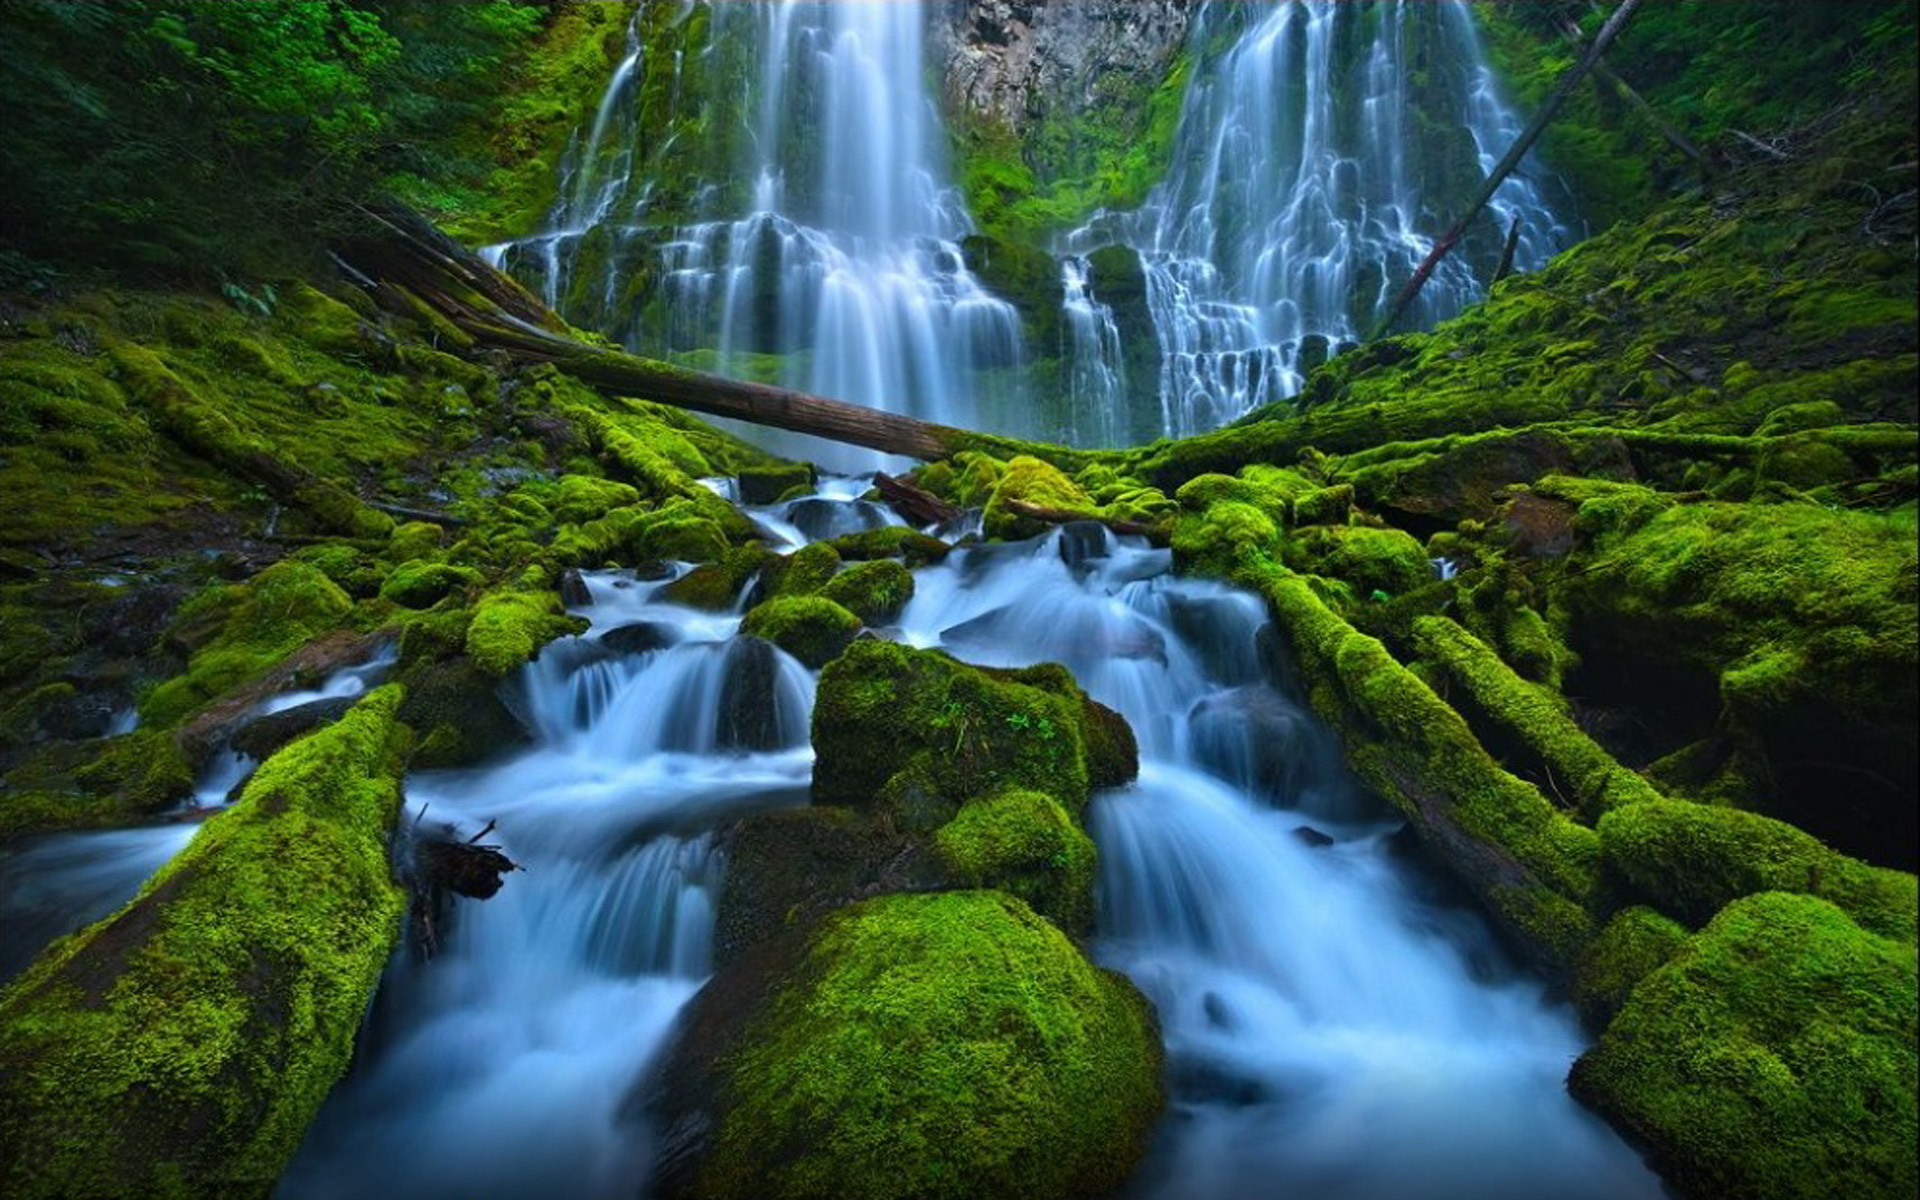 Animated Wallpaper Android Tablet Beautiful Waterfall Rocks Green Moss Proxy Falls Eugene